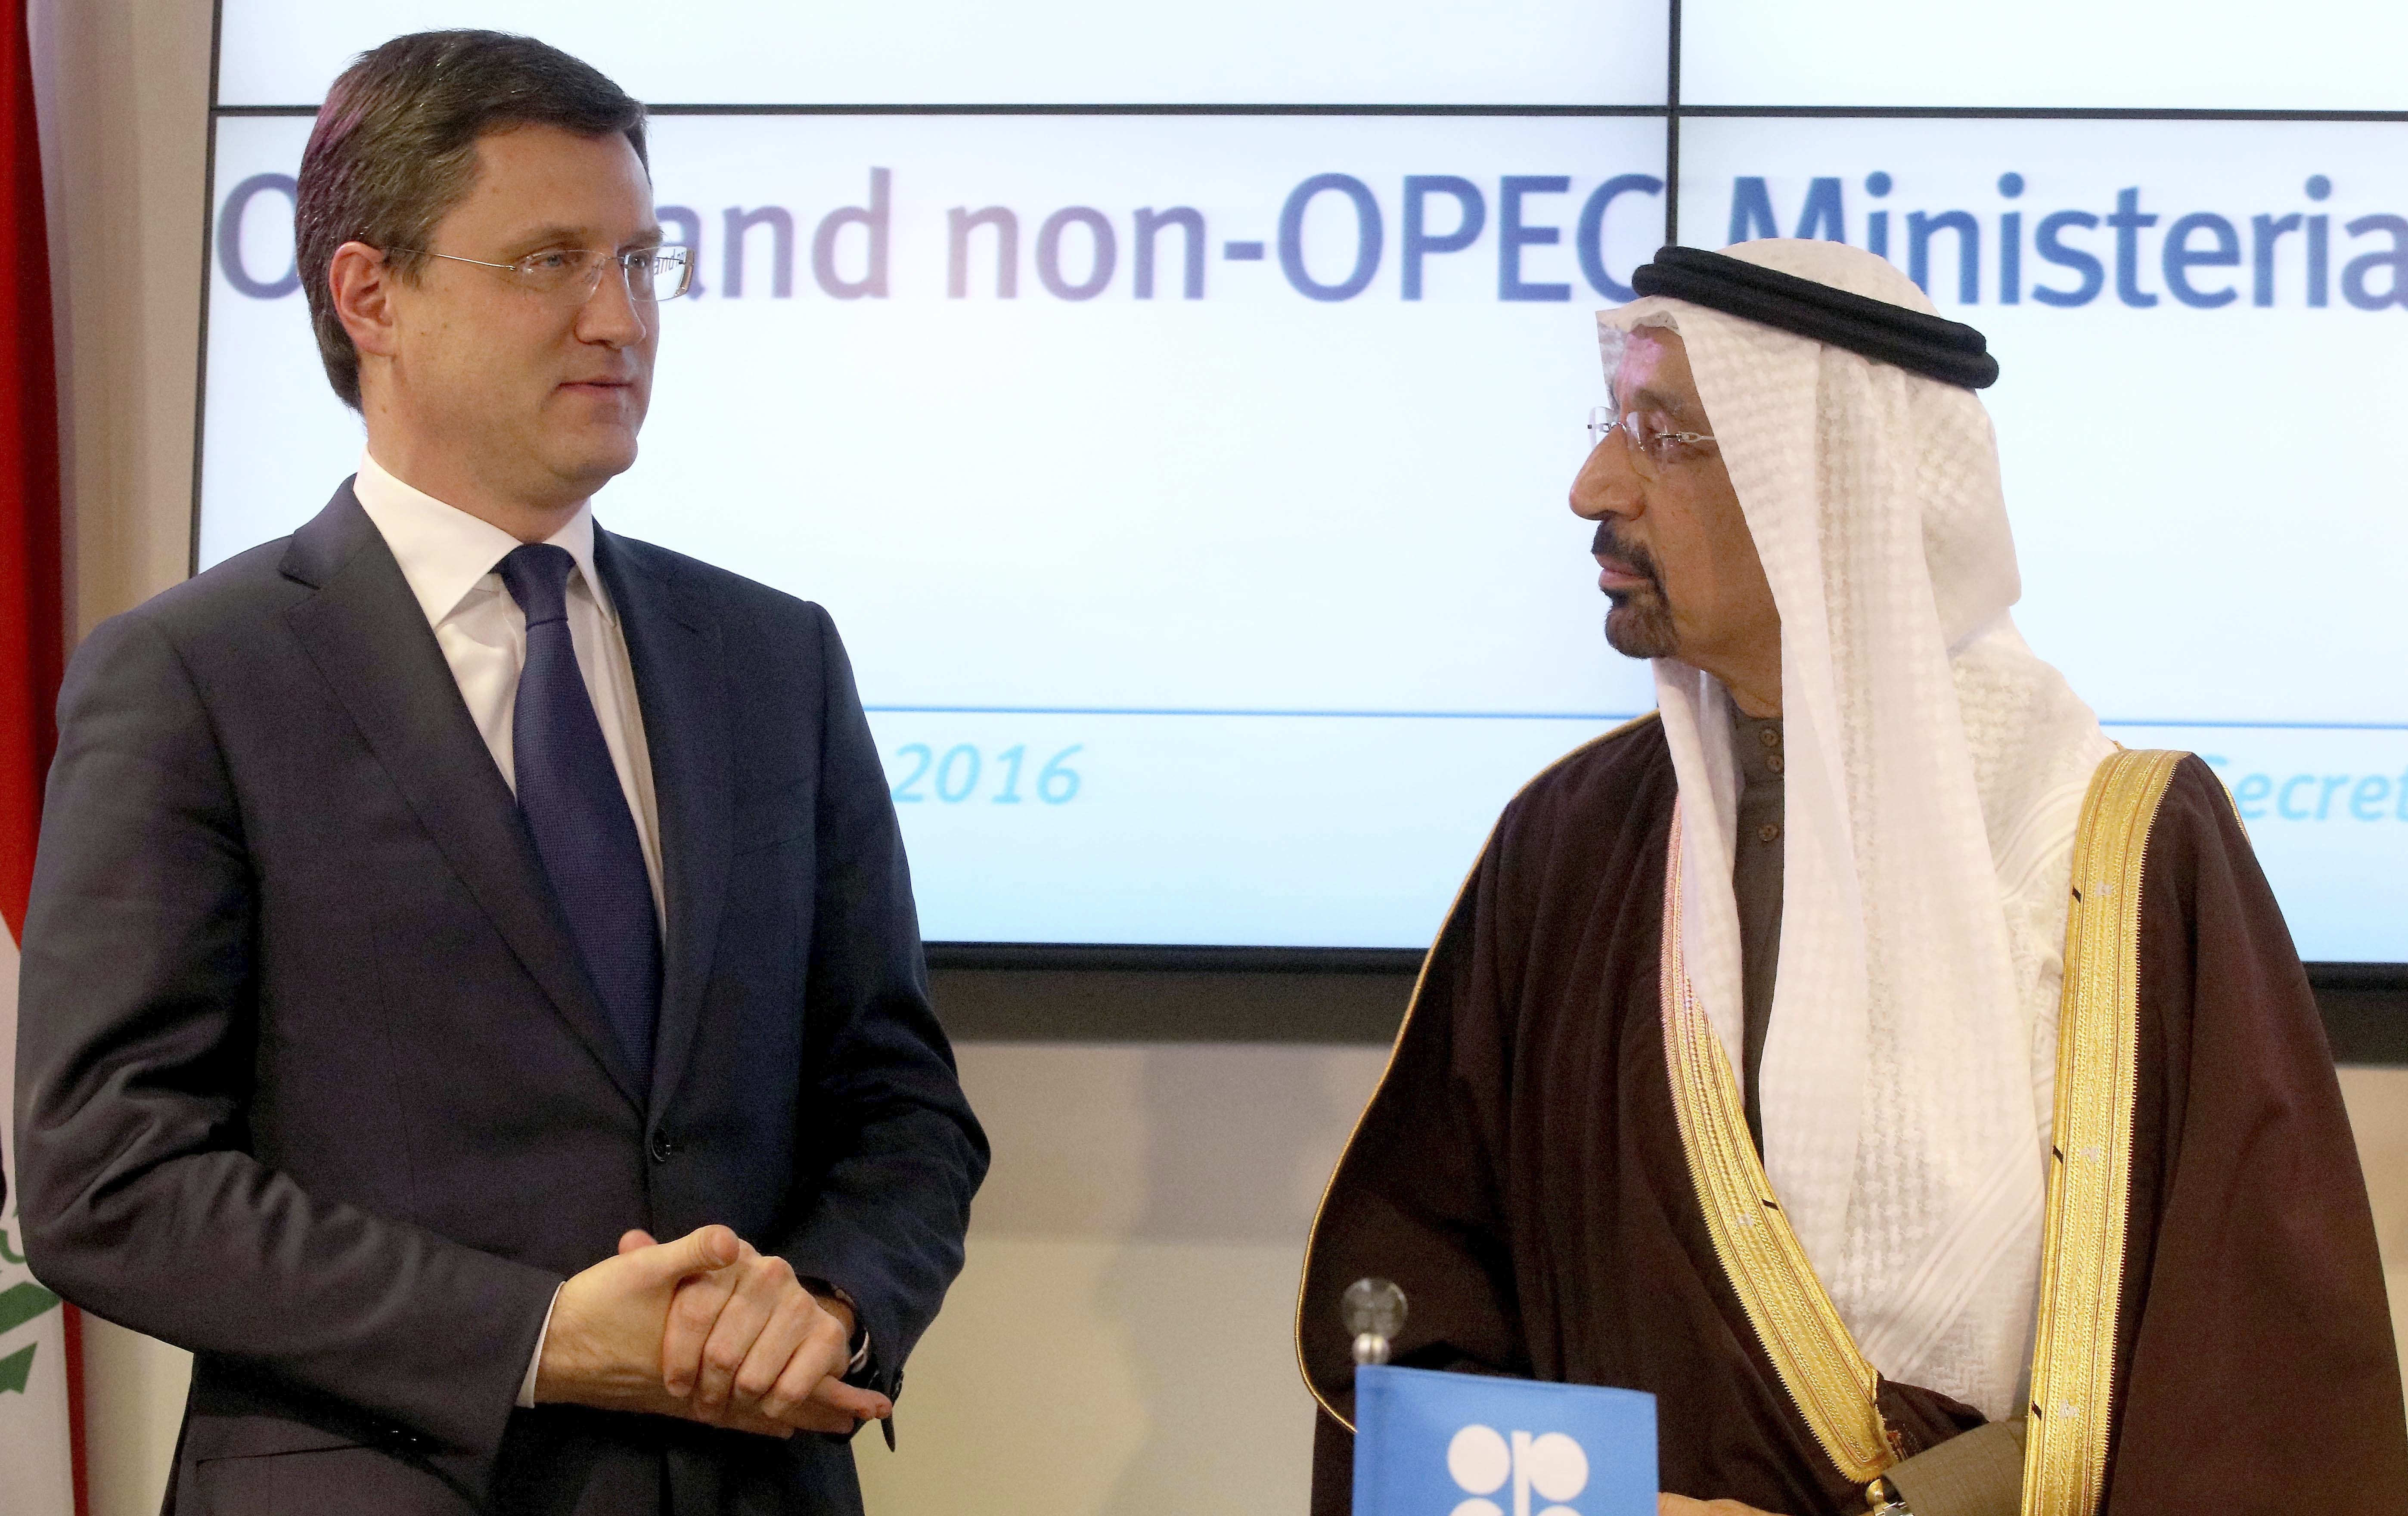 Russian Energy Minister Alexander Novak, left, and Saudi Minister of Energy, Industry, and Mineral Resources Khalid al-Falih at a news conference after a meeting of OPEC in Vienna, Austria, Dec. 10, 2016. (AP Photo/Ronald Zak)